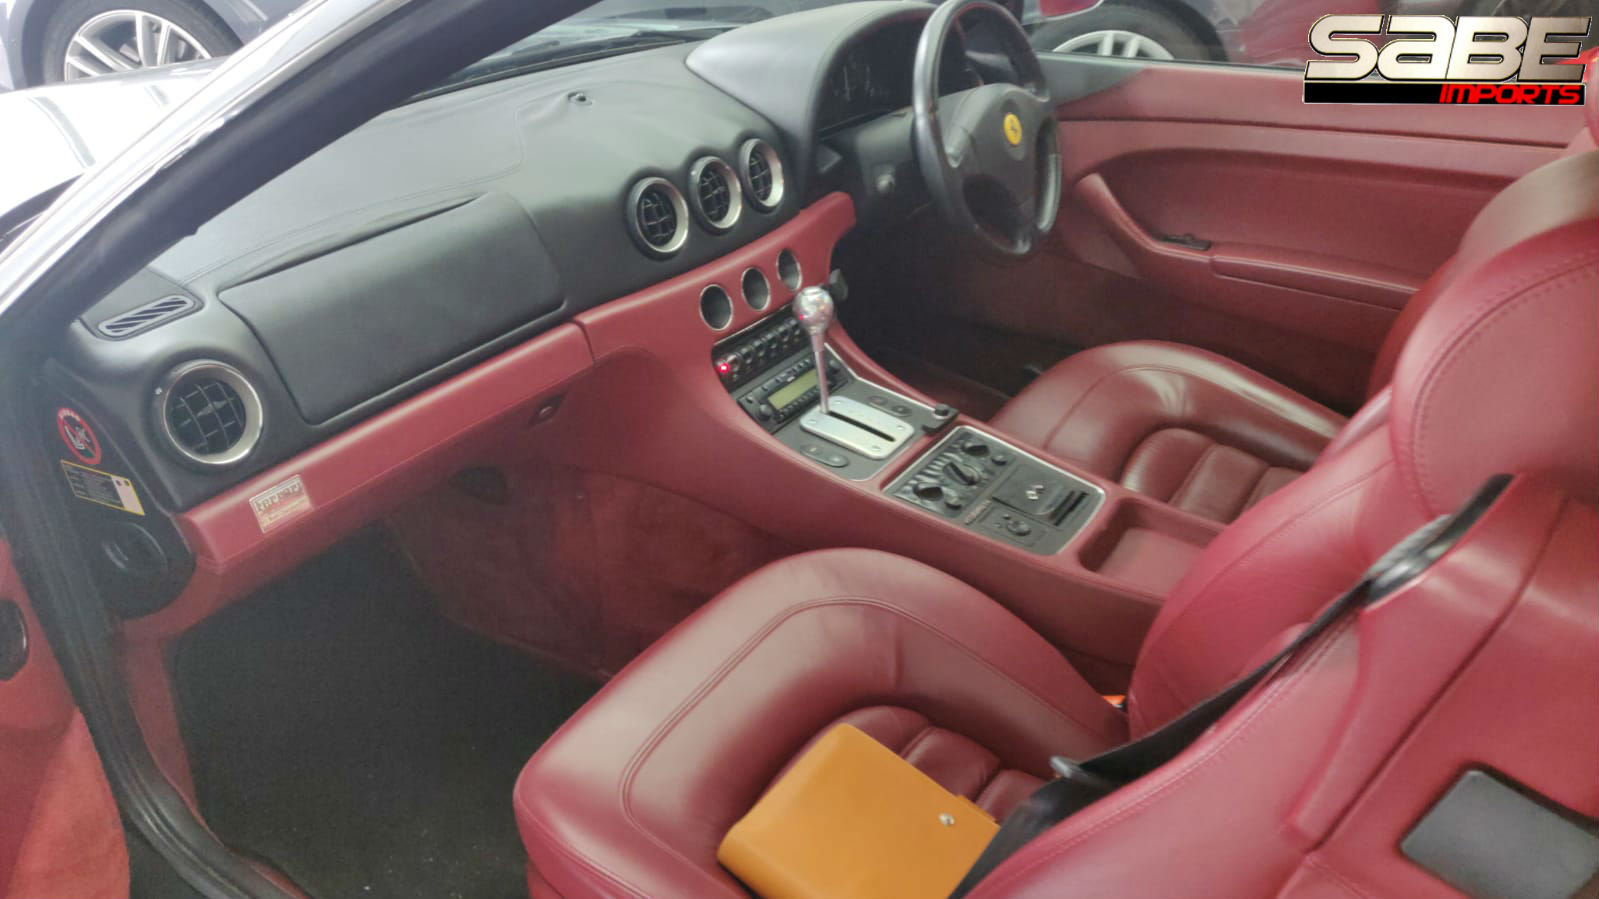 2002 FERRARI 456M 5.5 GTA *Full Service History* For Sale (picture 4 of 6)